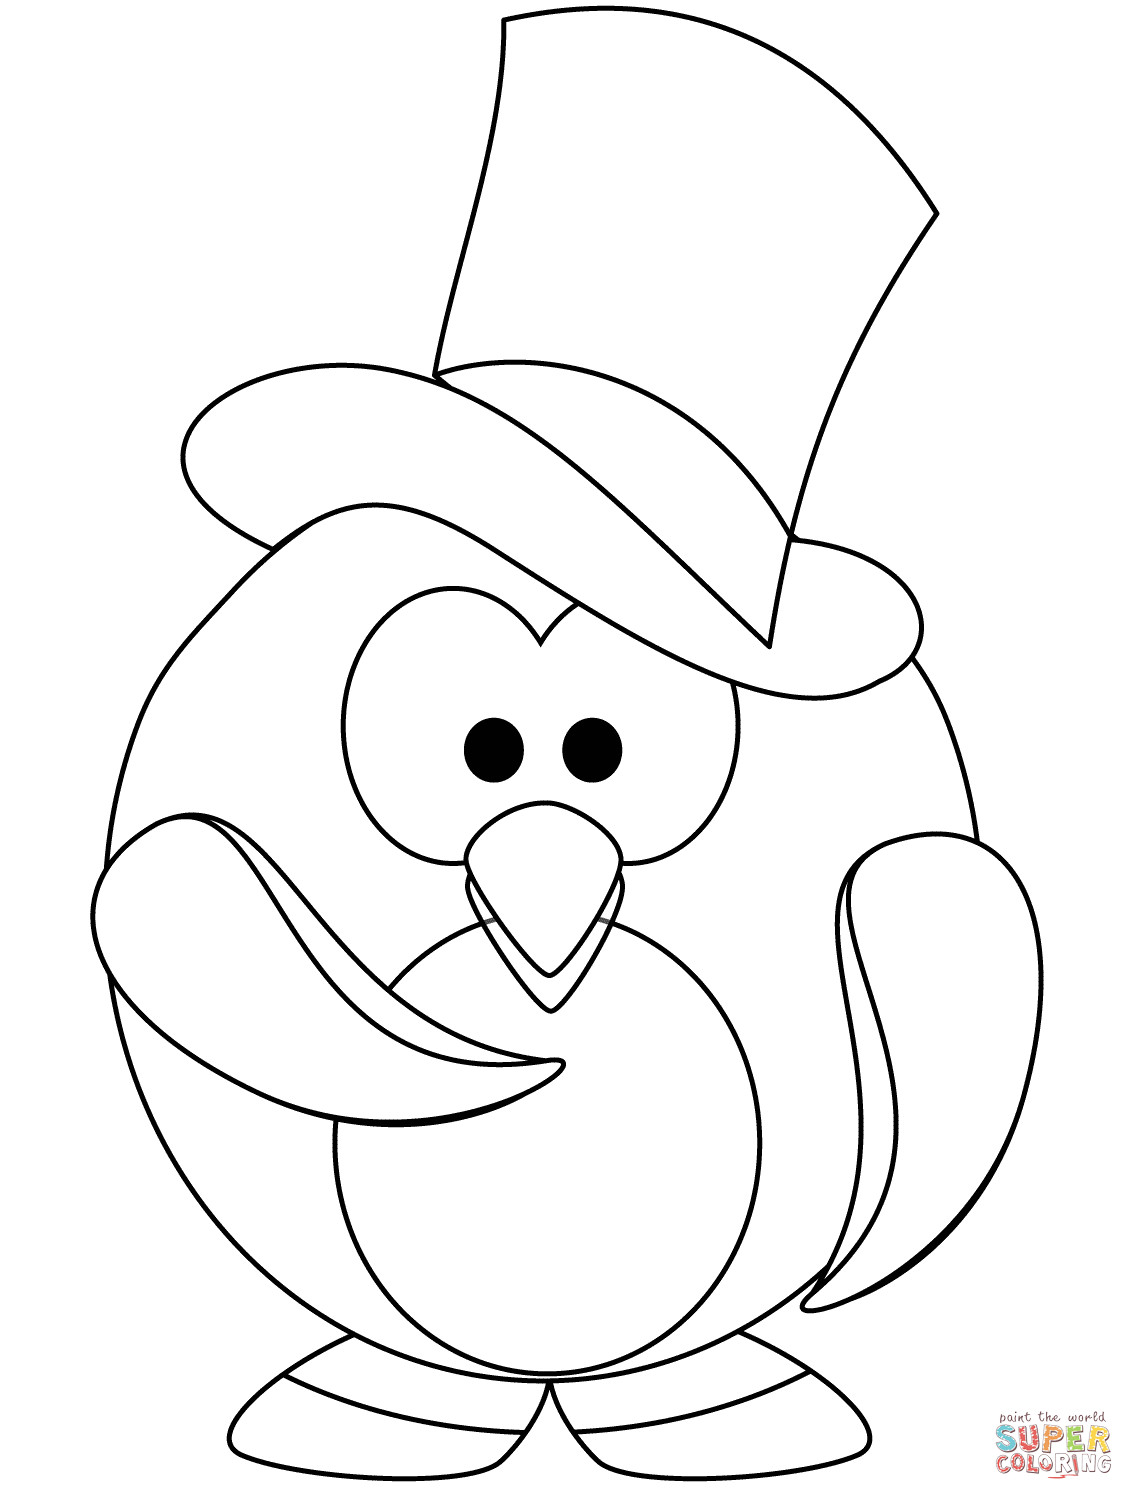 Printable Penguin Coloring Pages  The Gentleman Penguin coloring page